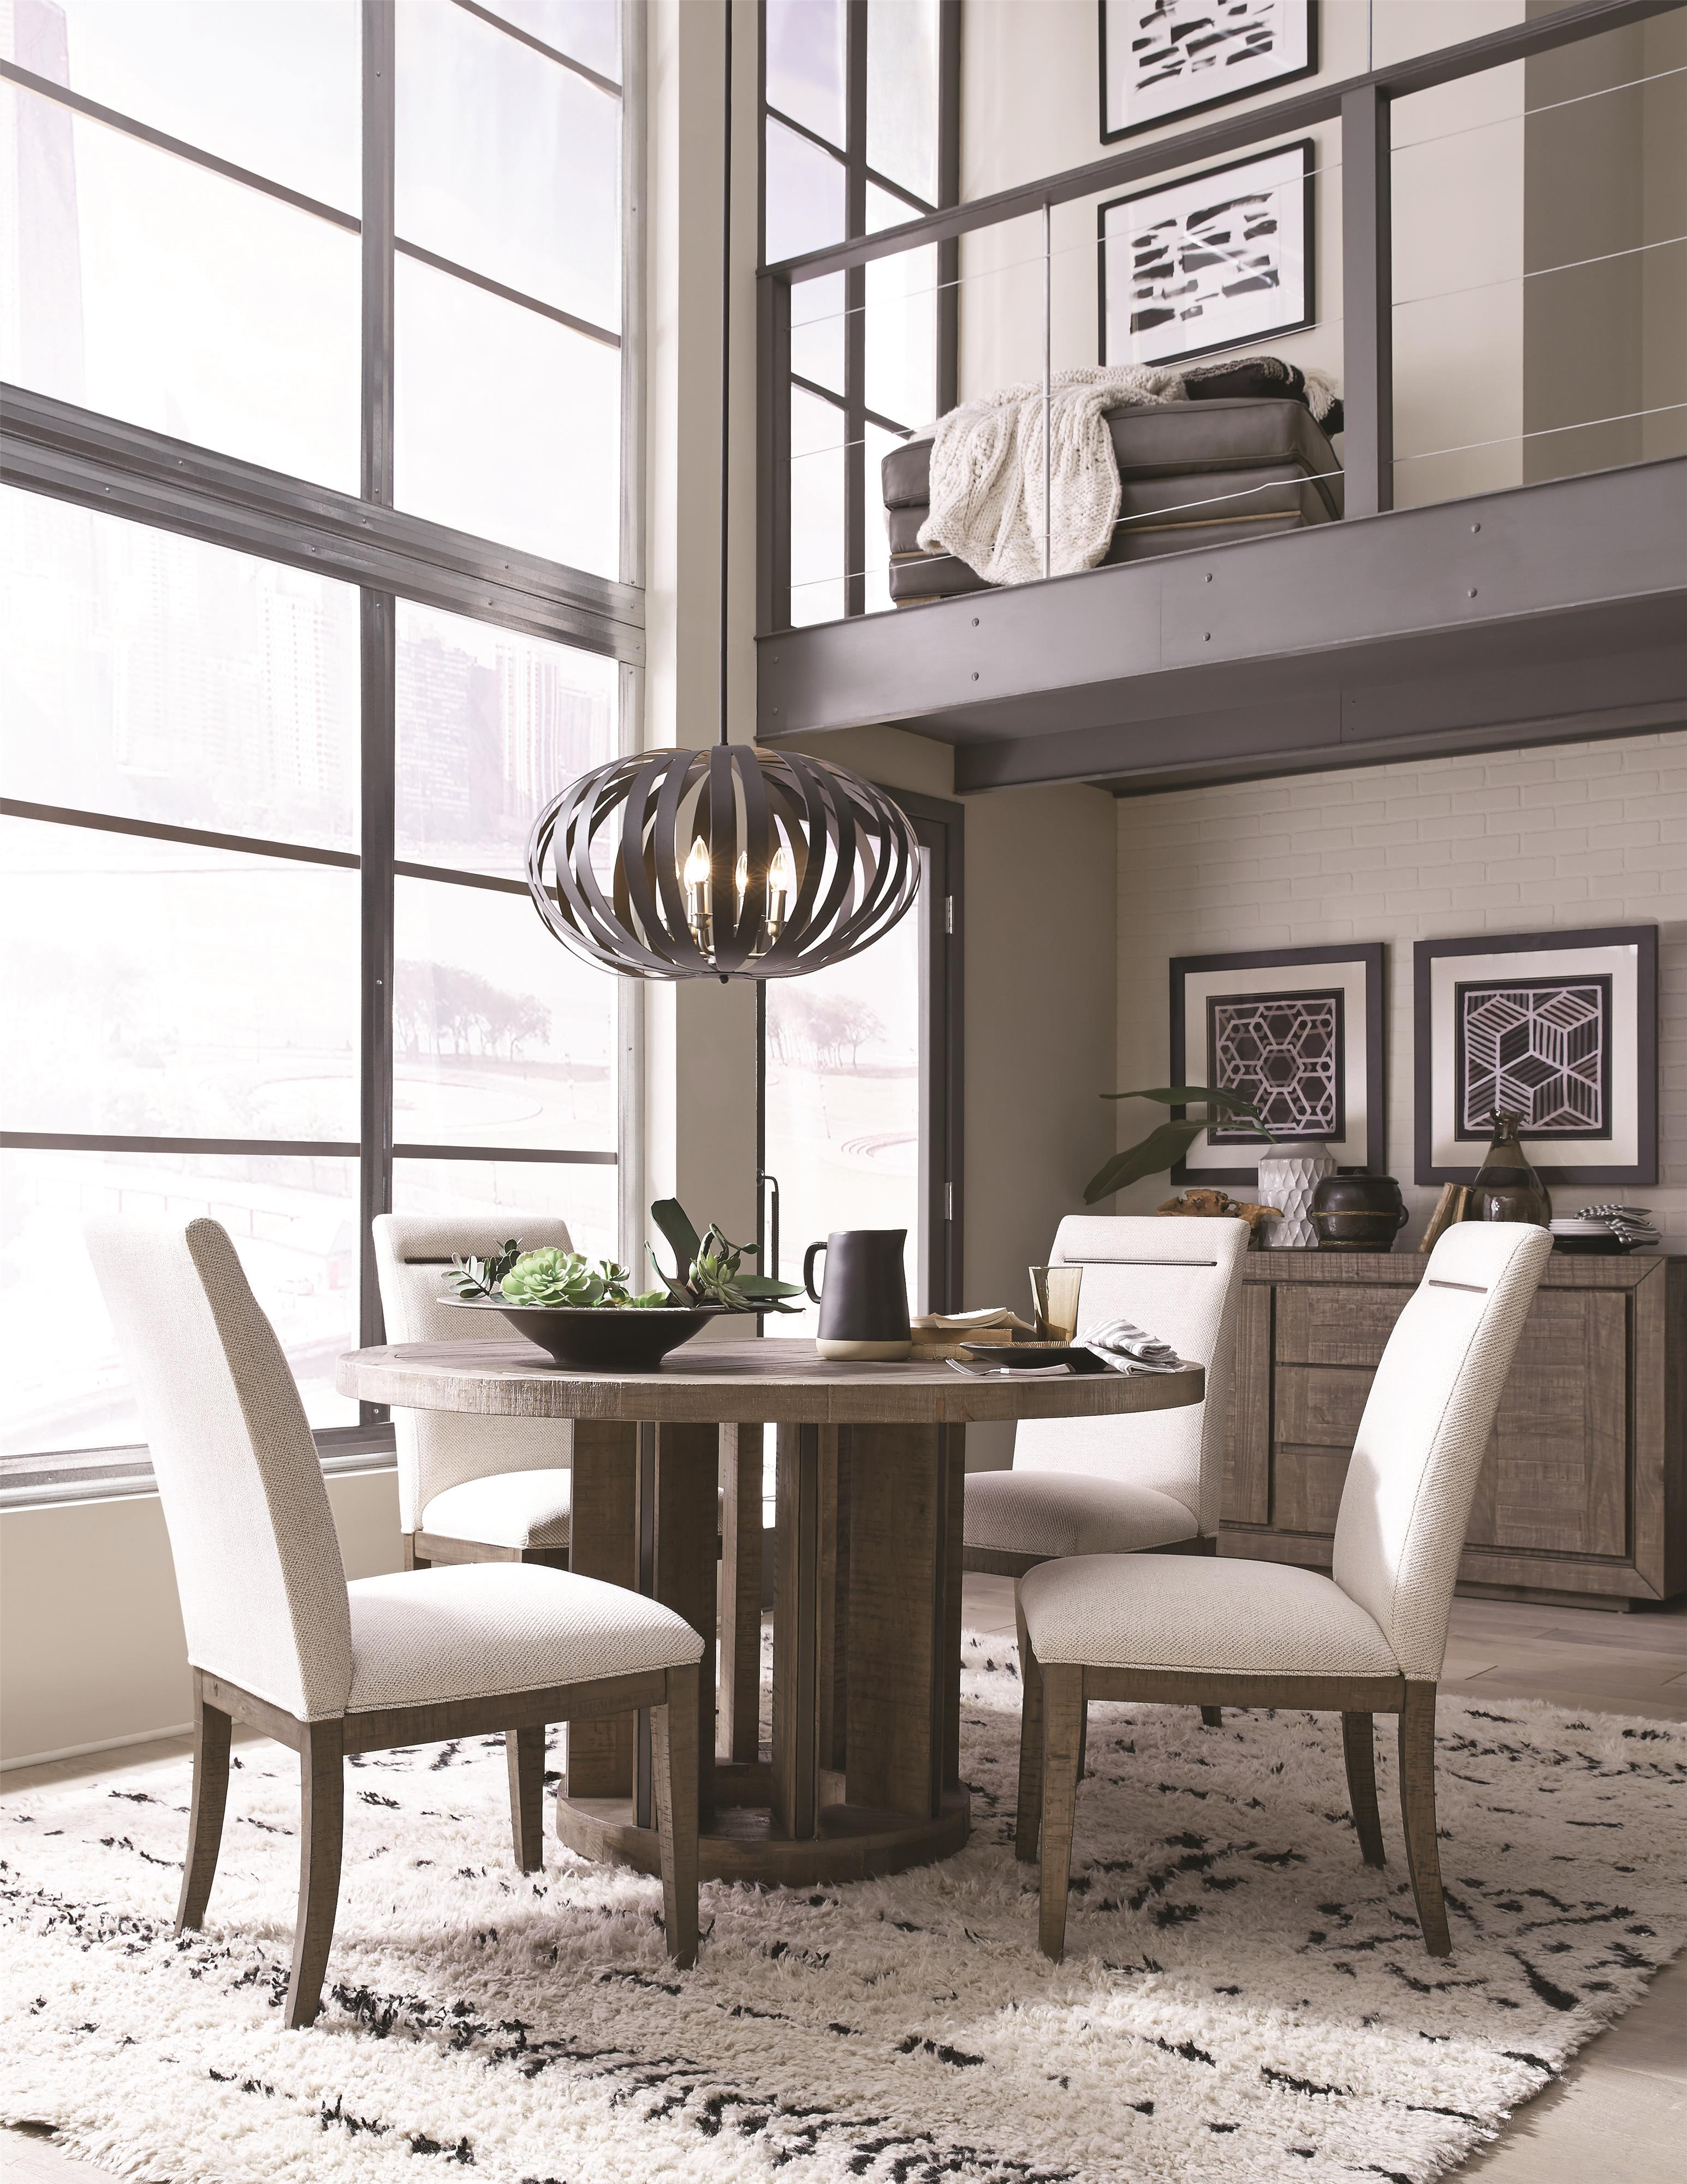 Outstanding Granada Hills D4592 By Magnussen Home Rotmans Gmtry Best Dining Table And Chair Ideas Images Gmtryco